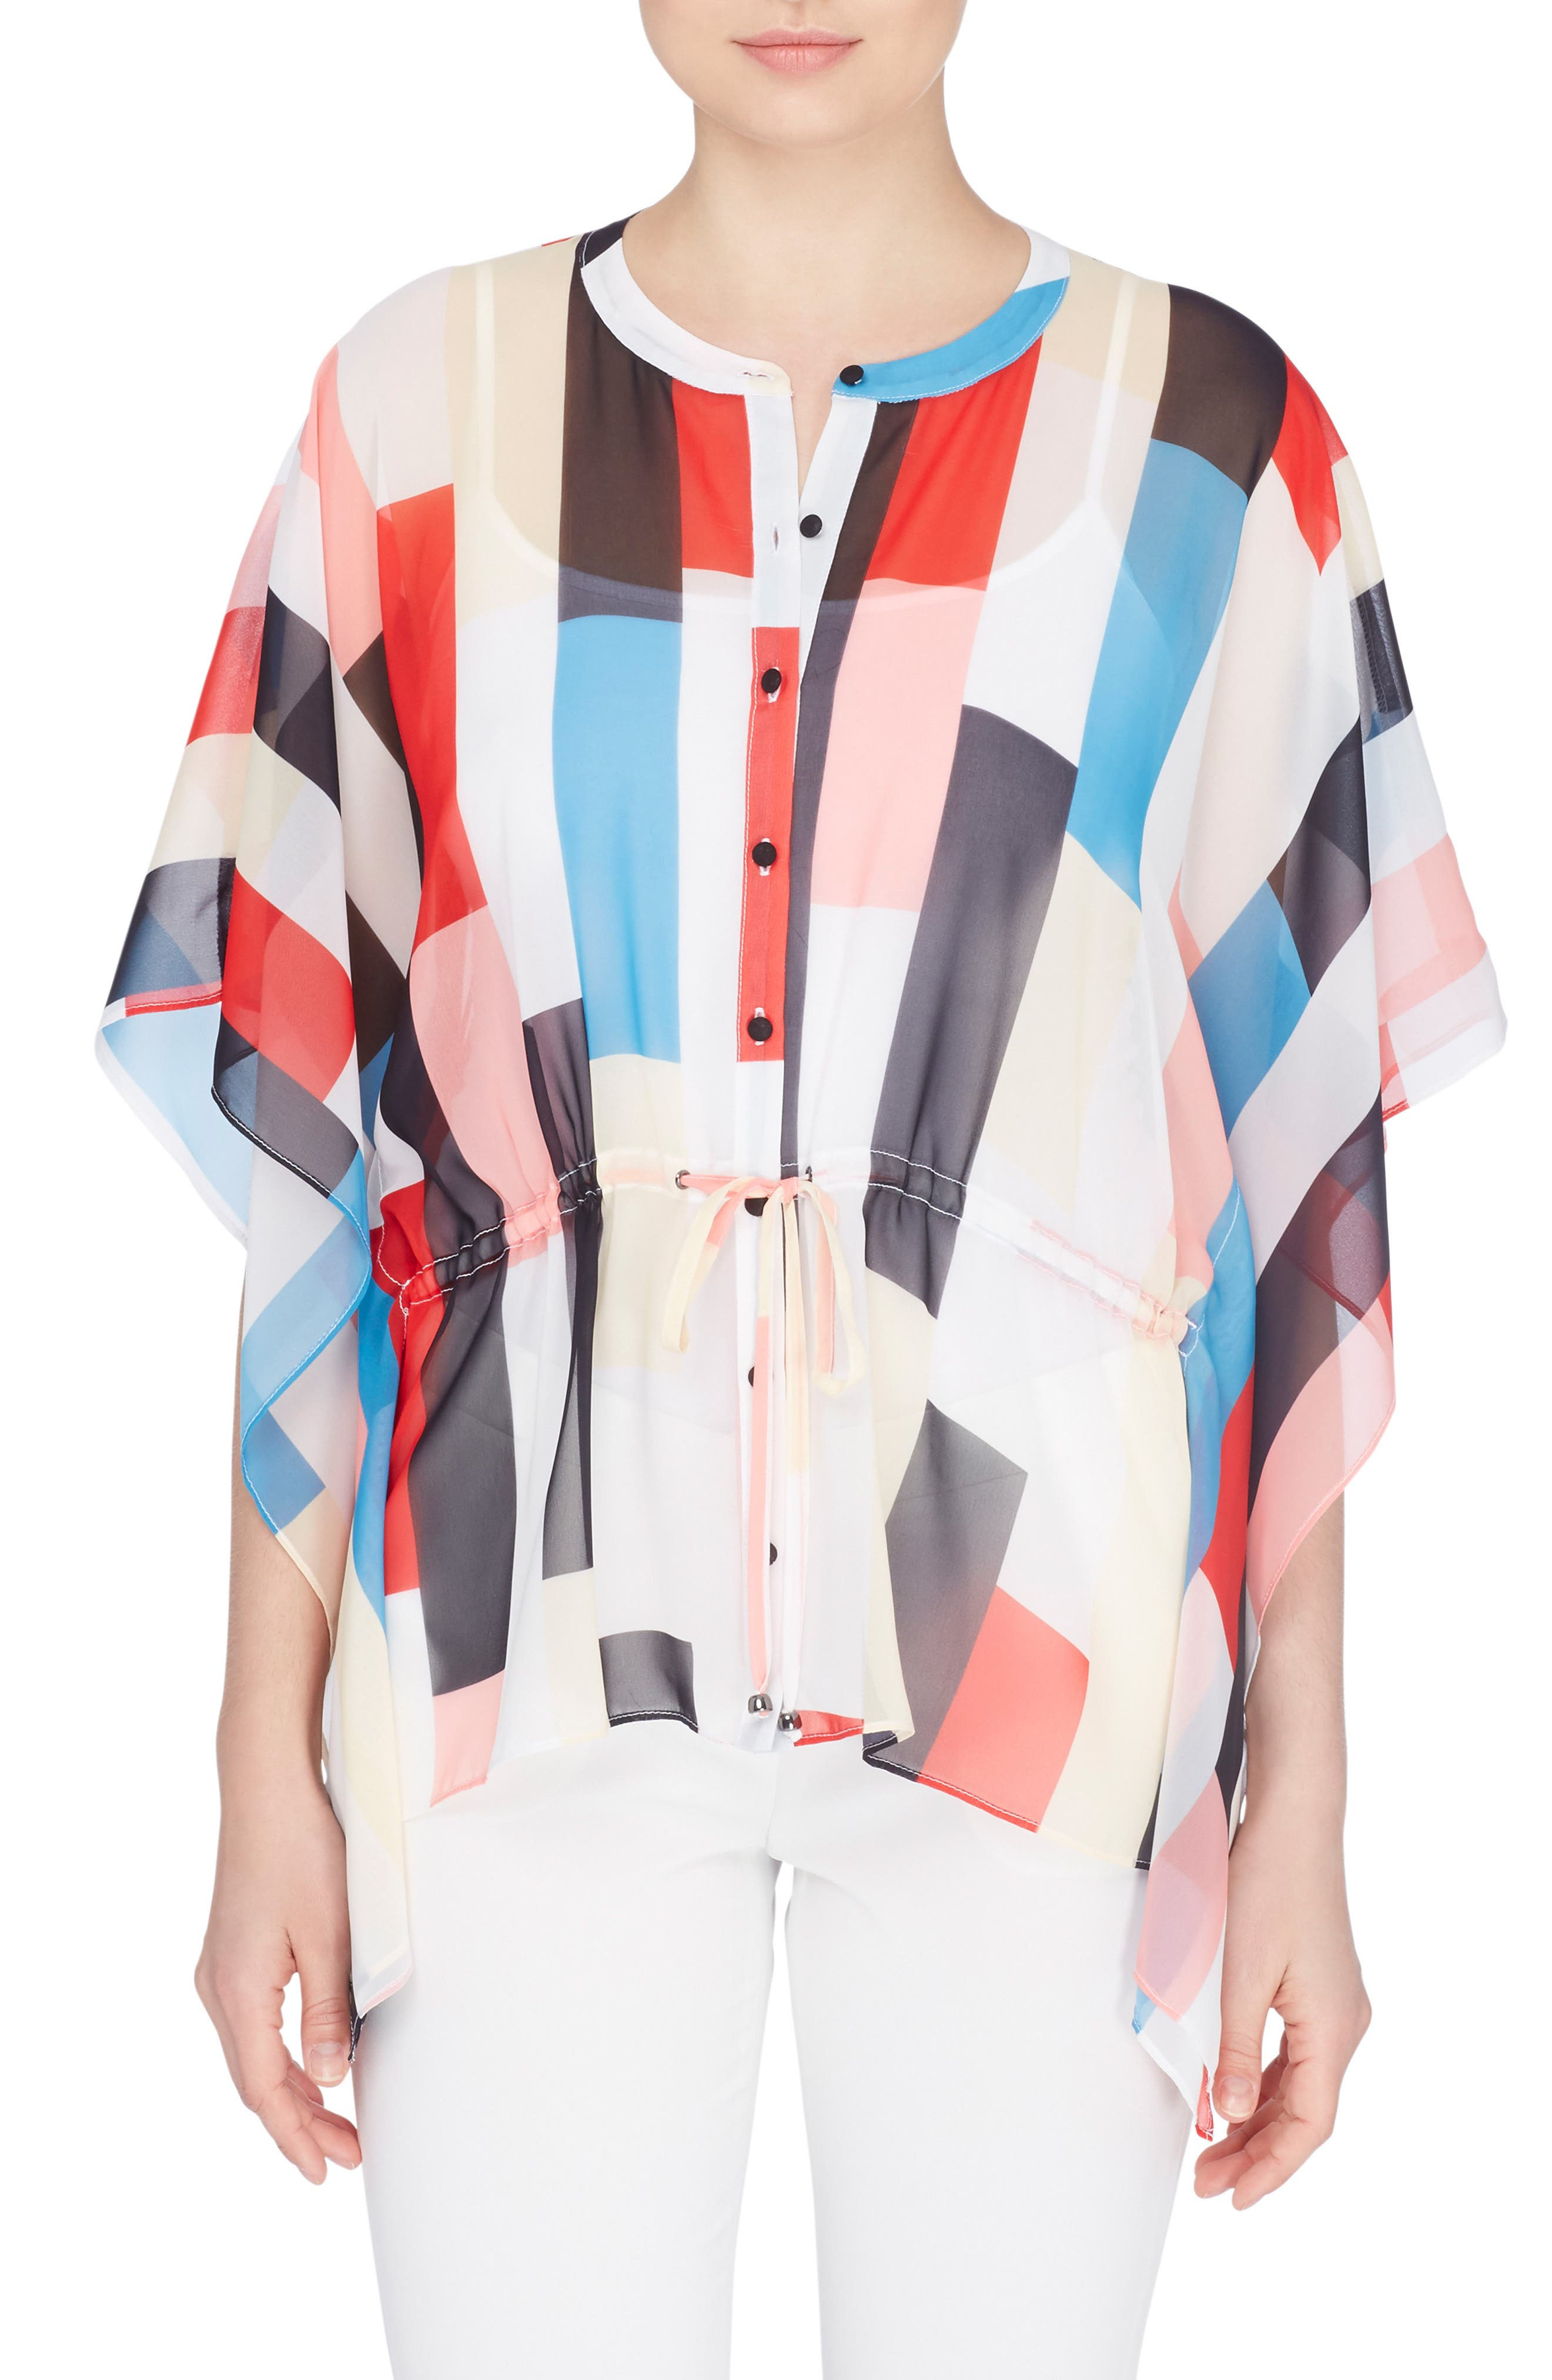 Komai Print Chiffon Blouse,                             Main thumbnail 1, color,                             100